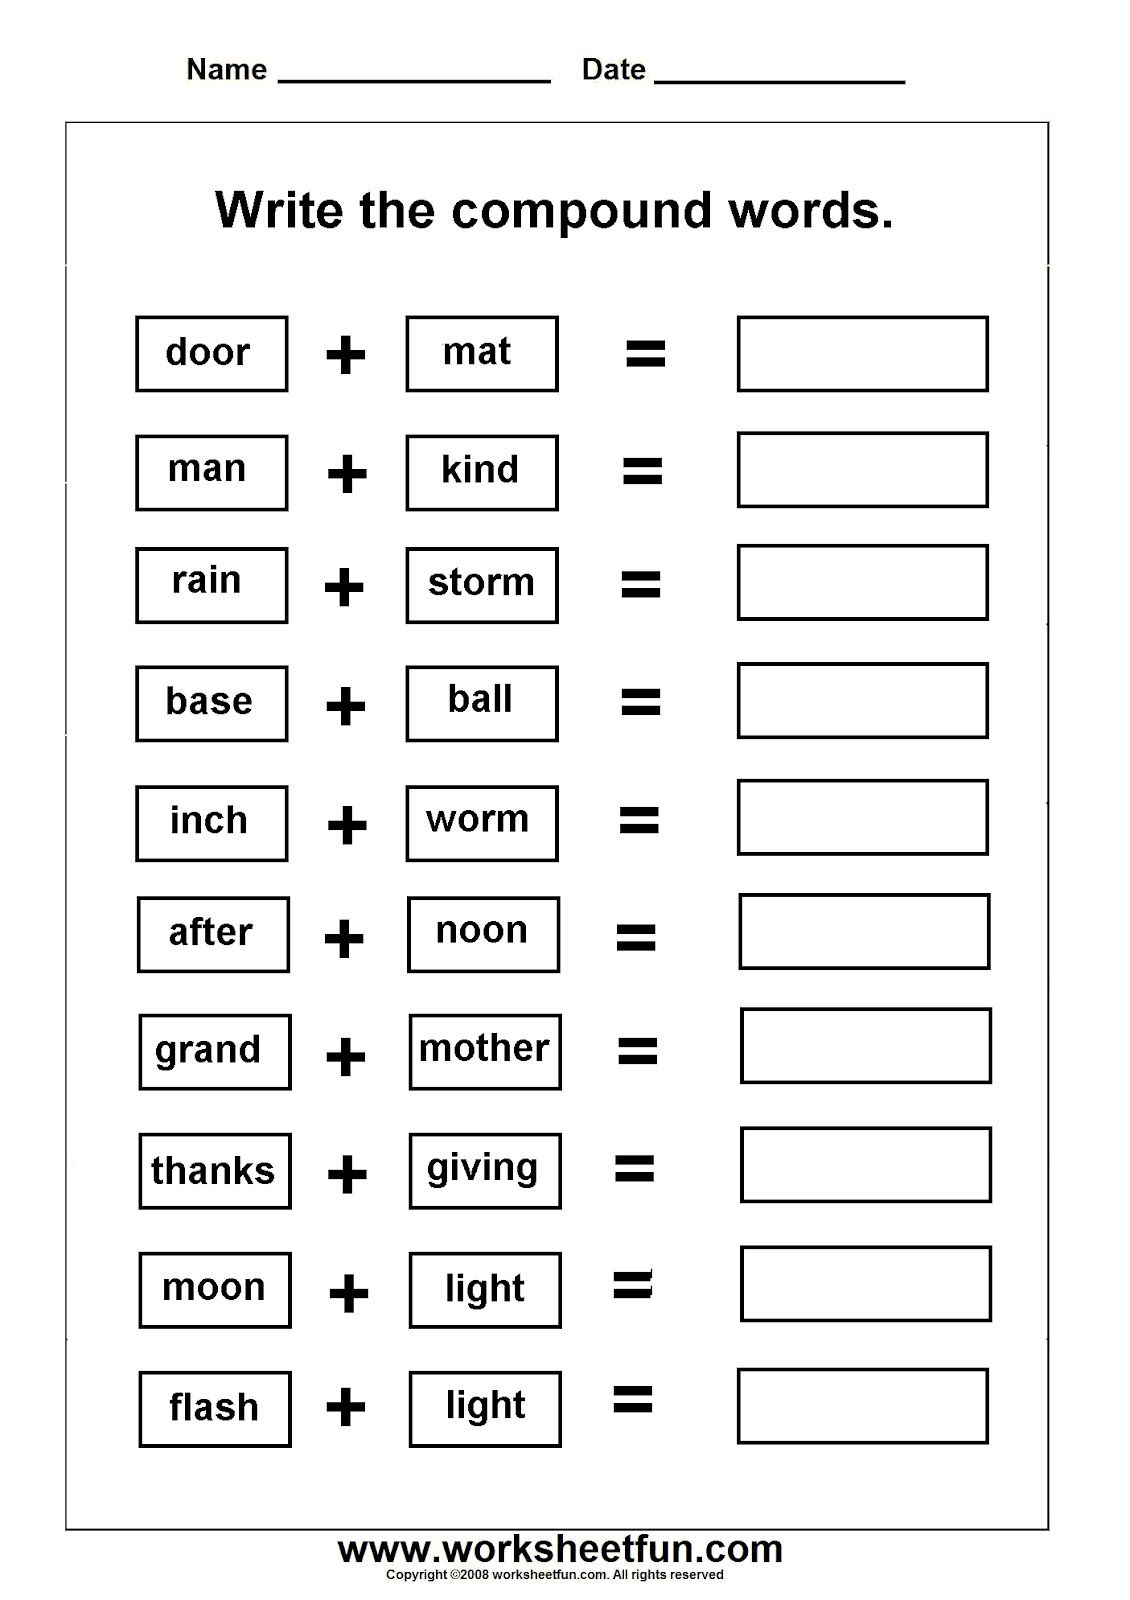 Worksheets On Compound Words With Pictures | Ela Activities - Printable Compound Word Crossword Puzzle